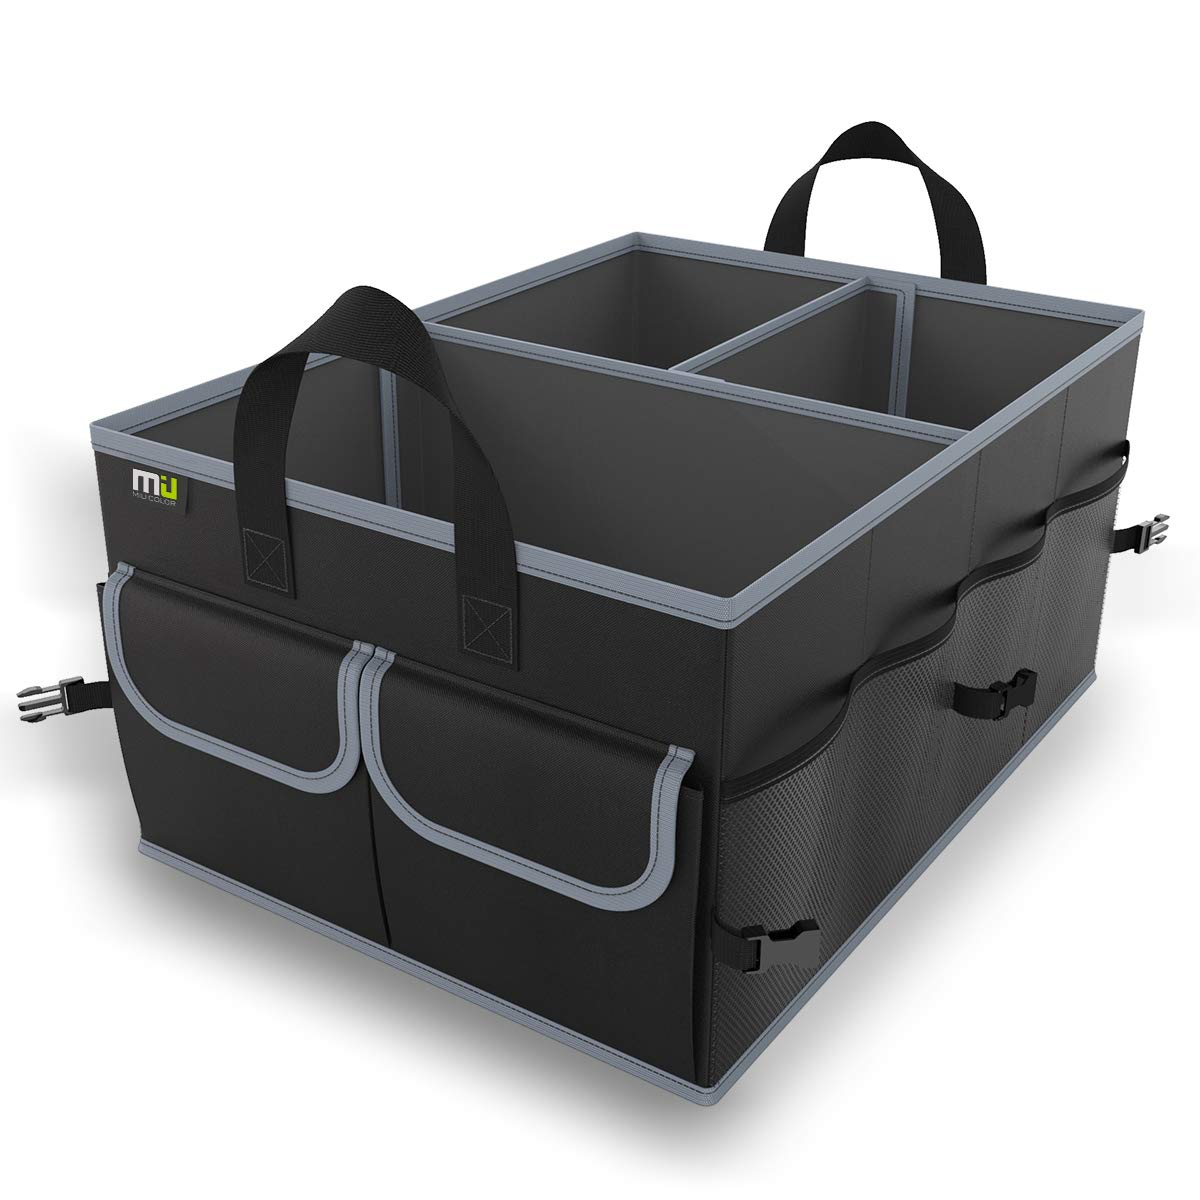 MIU COLOR Car Trunk Organizer, Collapsible Portable Cargo Storage Container, Multipurpose Sturdy Trunk Organizer for Car, Truck, SUV(Black with Strap) by MIU COLOR